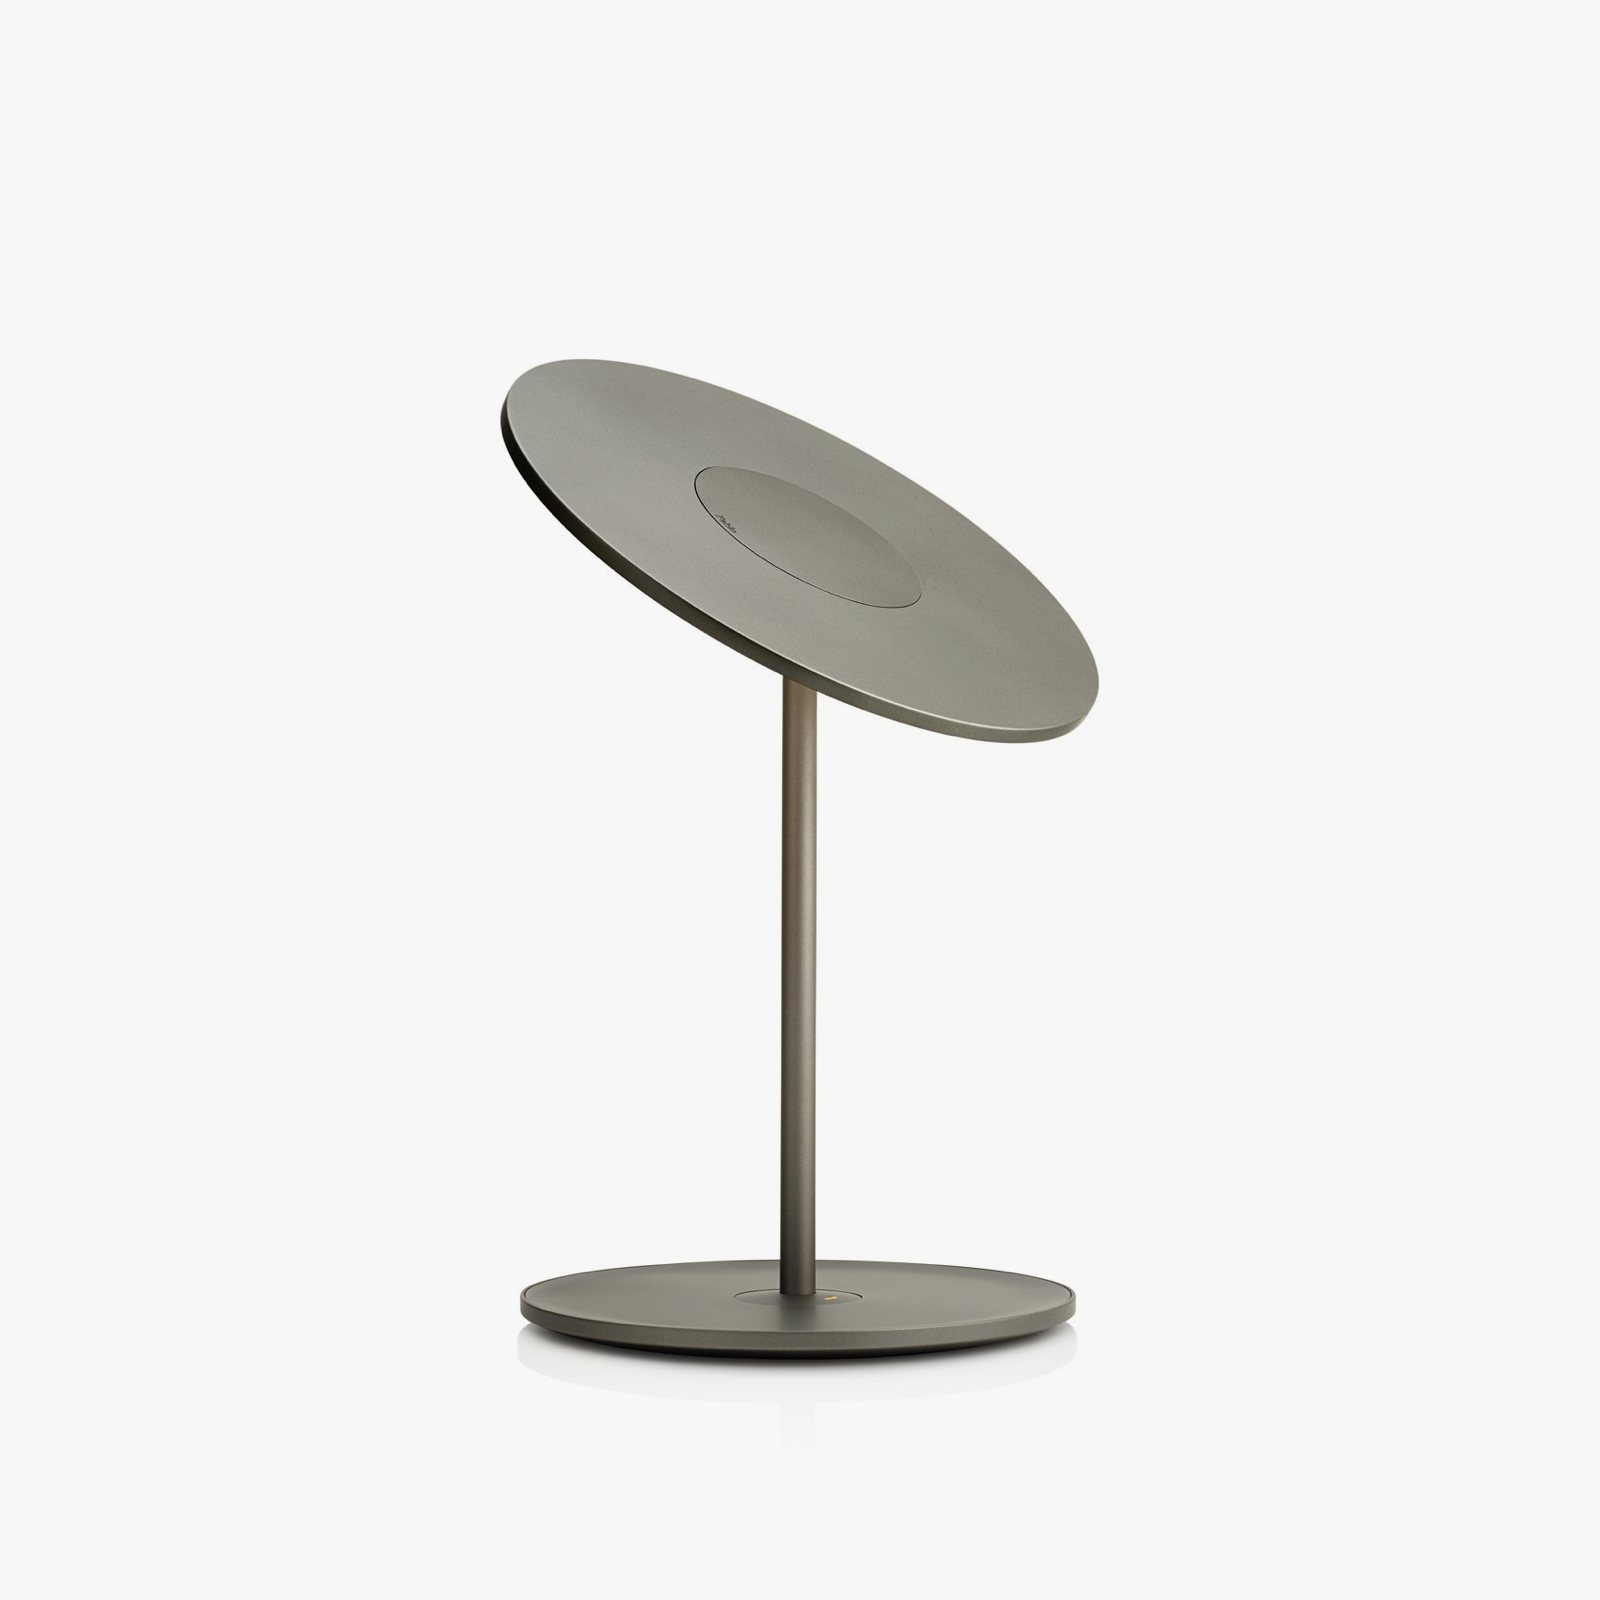 Circa Table Lamp by Pablo Studio for Pablo | UP interiors